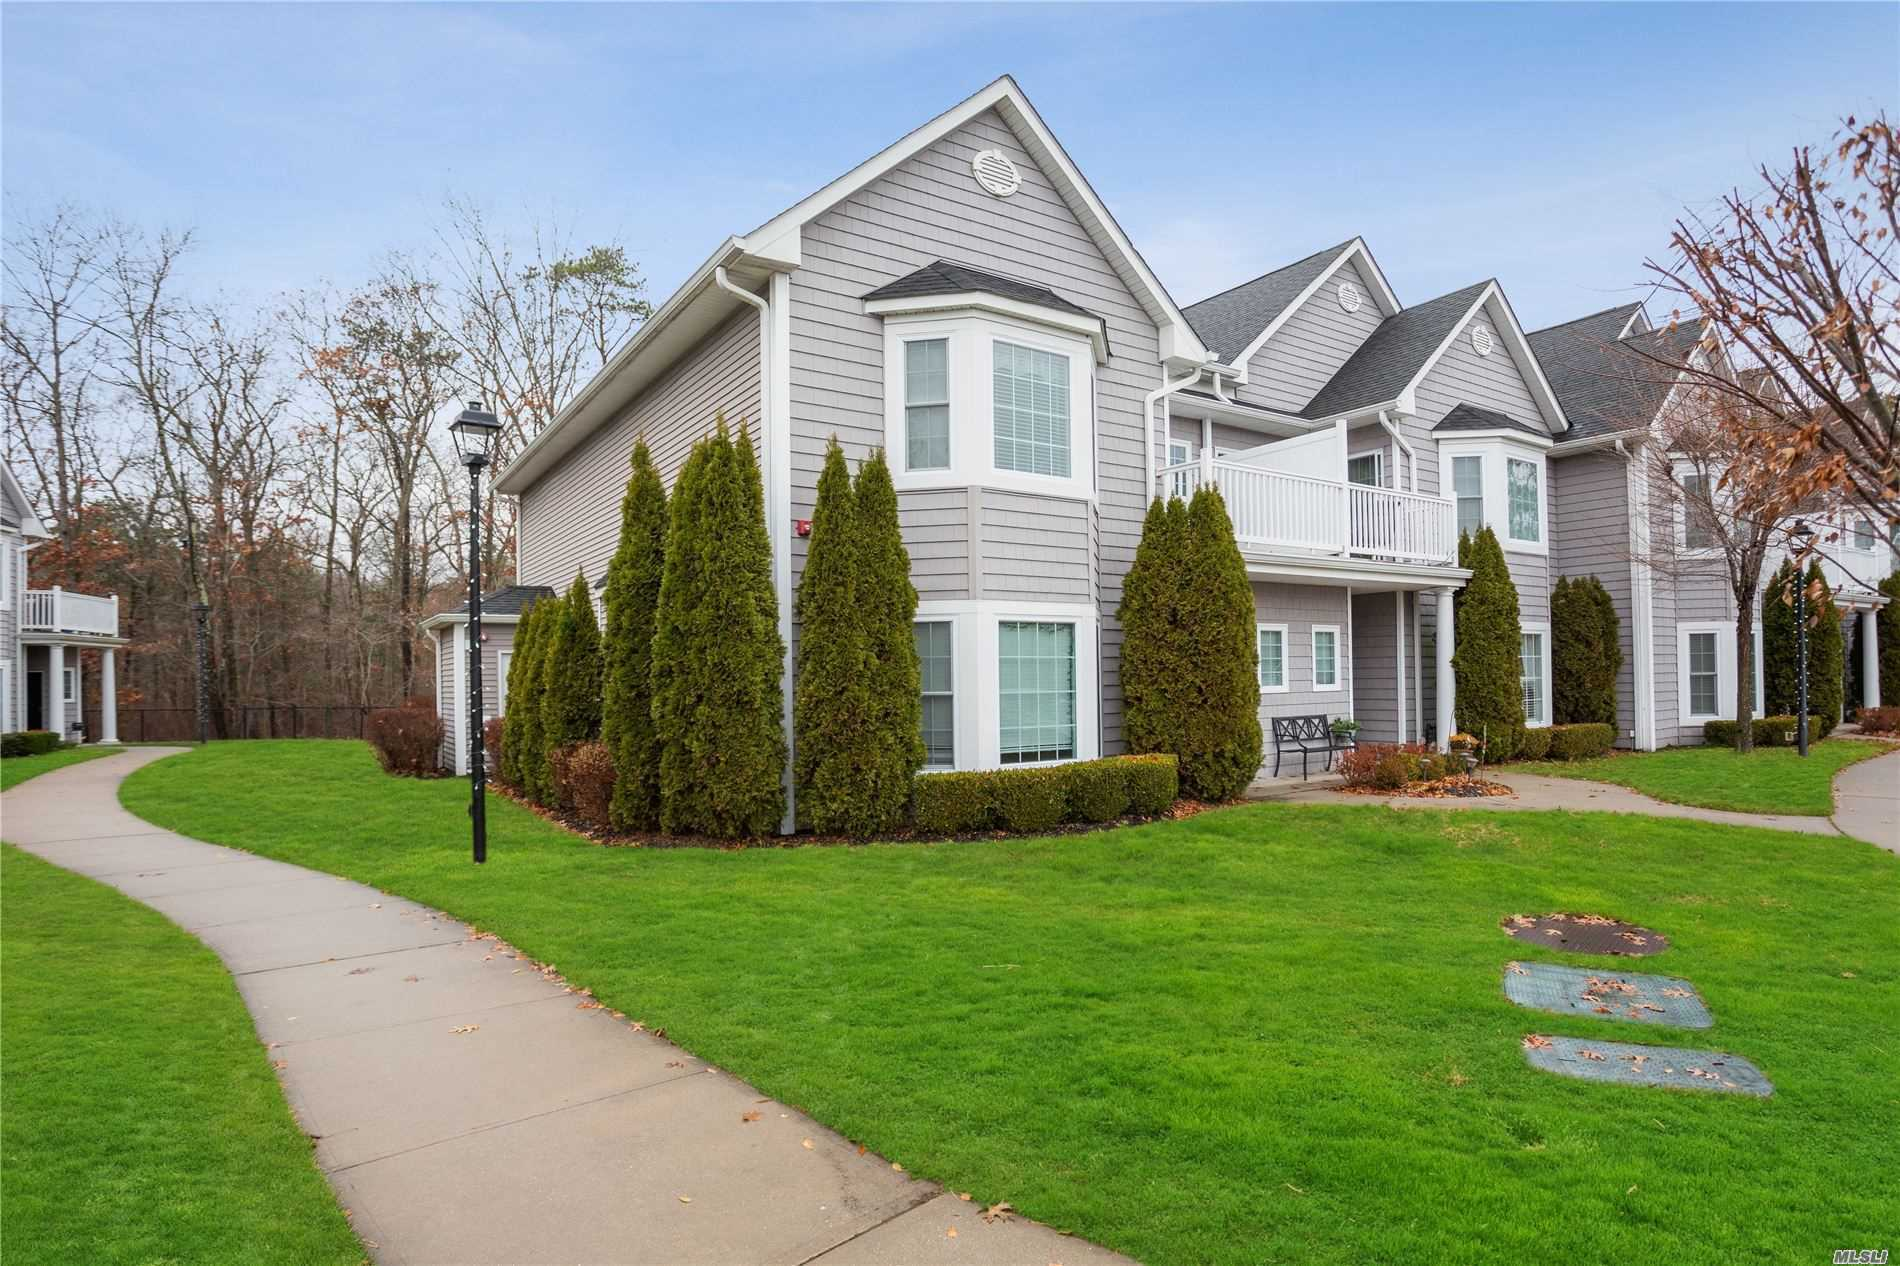 302 O'keefe Ct - Oakdale, New York